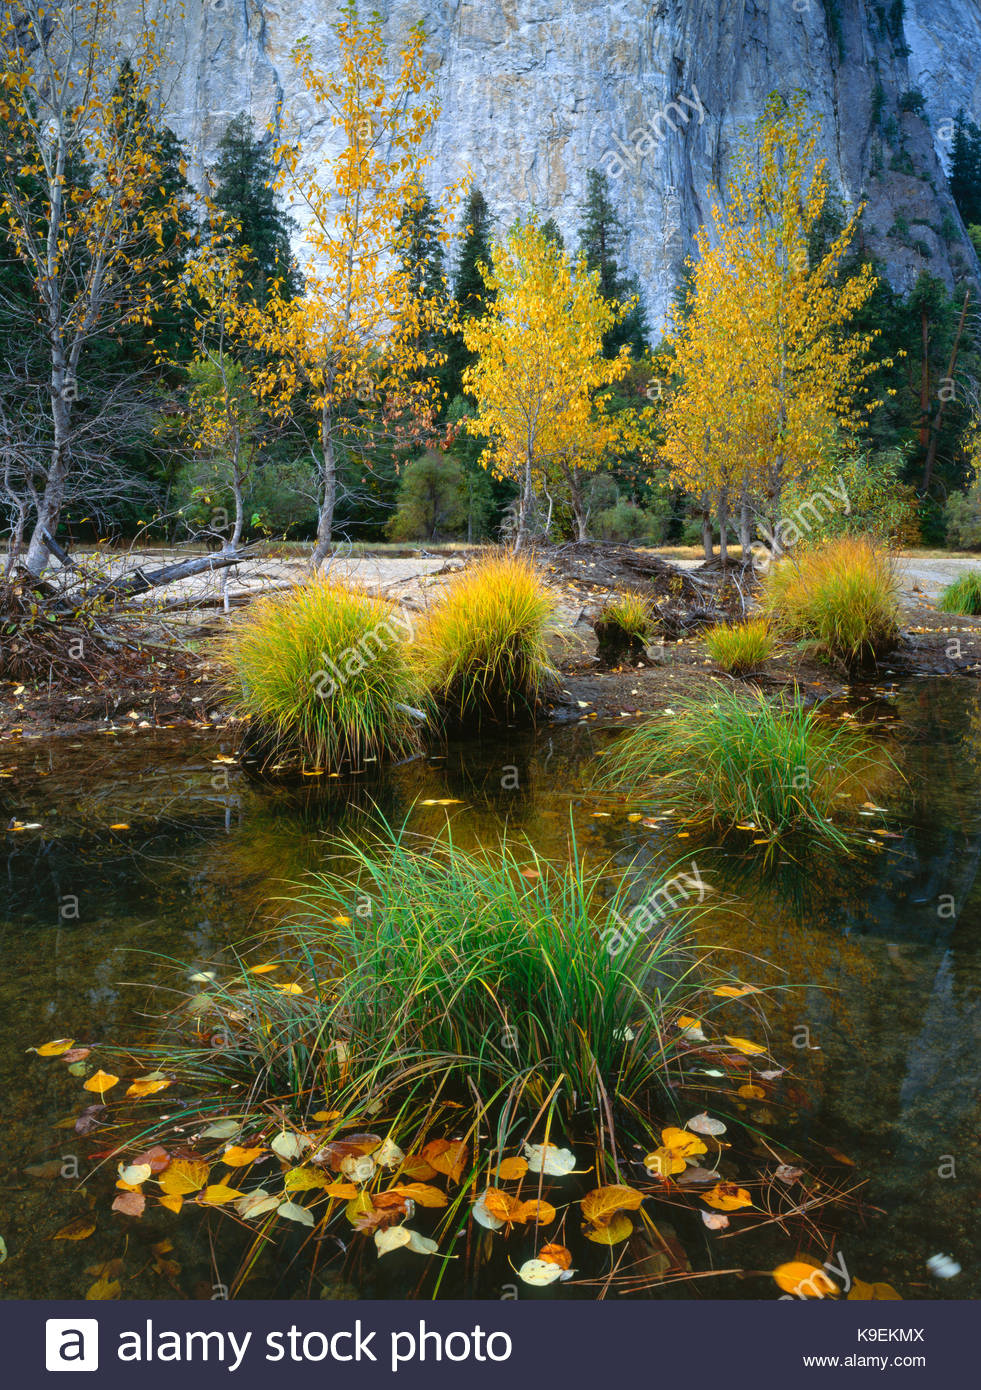 Grasses and Fall Leaves in the Merced River, Yosemite National Park, California - Stock Image